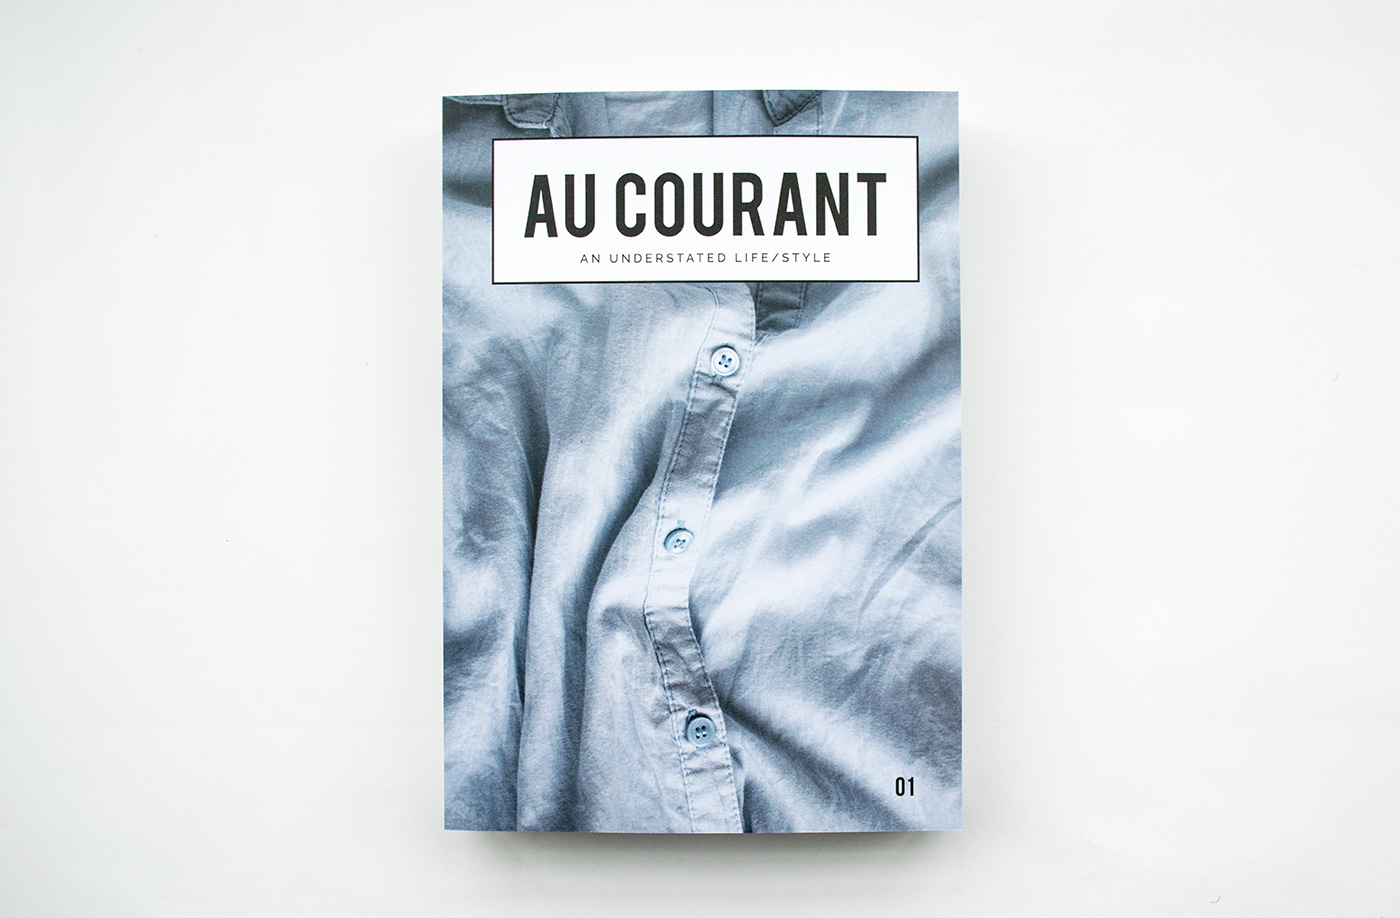 The cover of  Au Courant Volume 01 —a close-up shot of a crumpled shirt, an understated image synonymous with Lisa-Marie's vision.